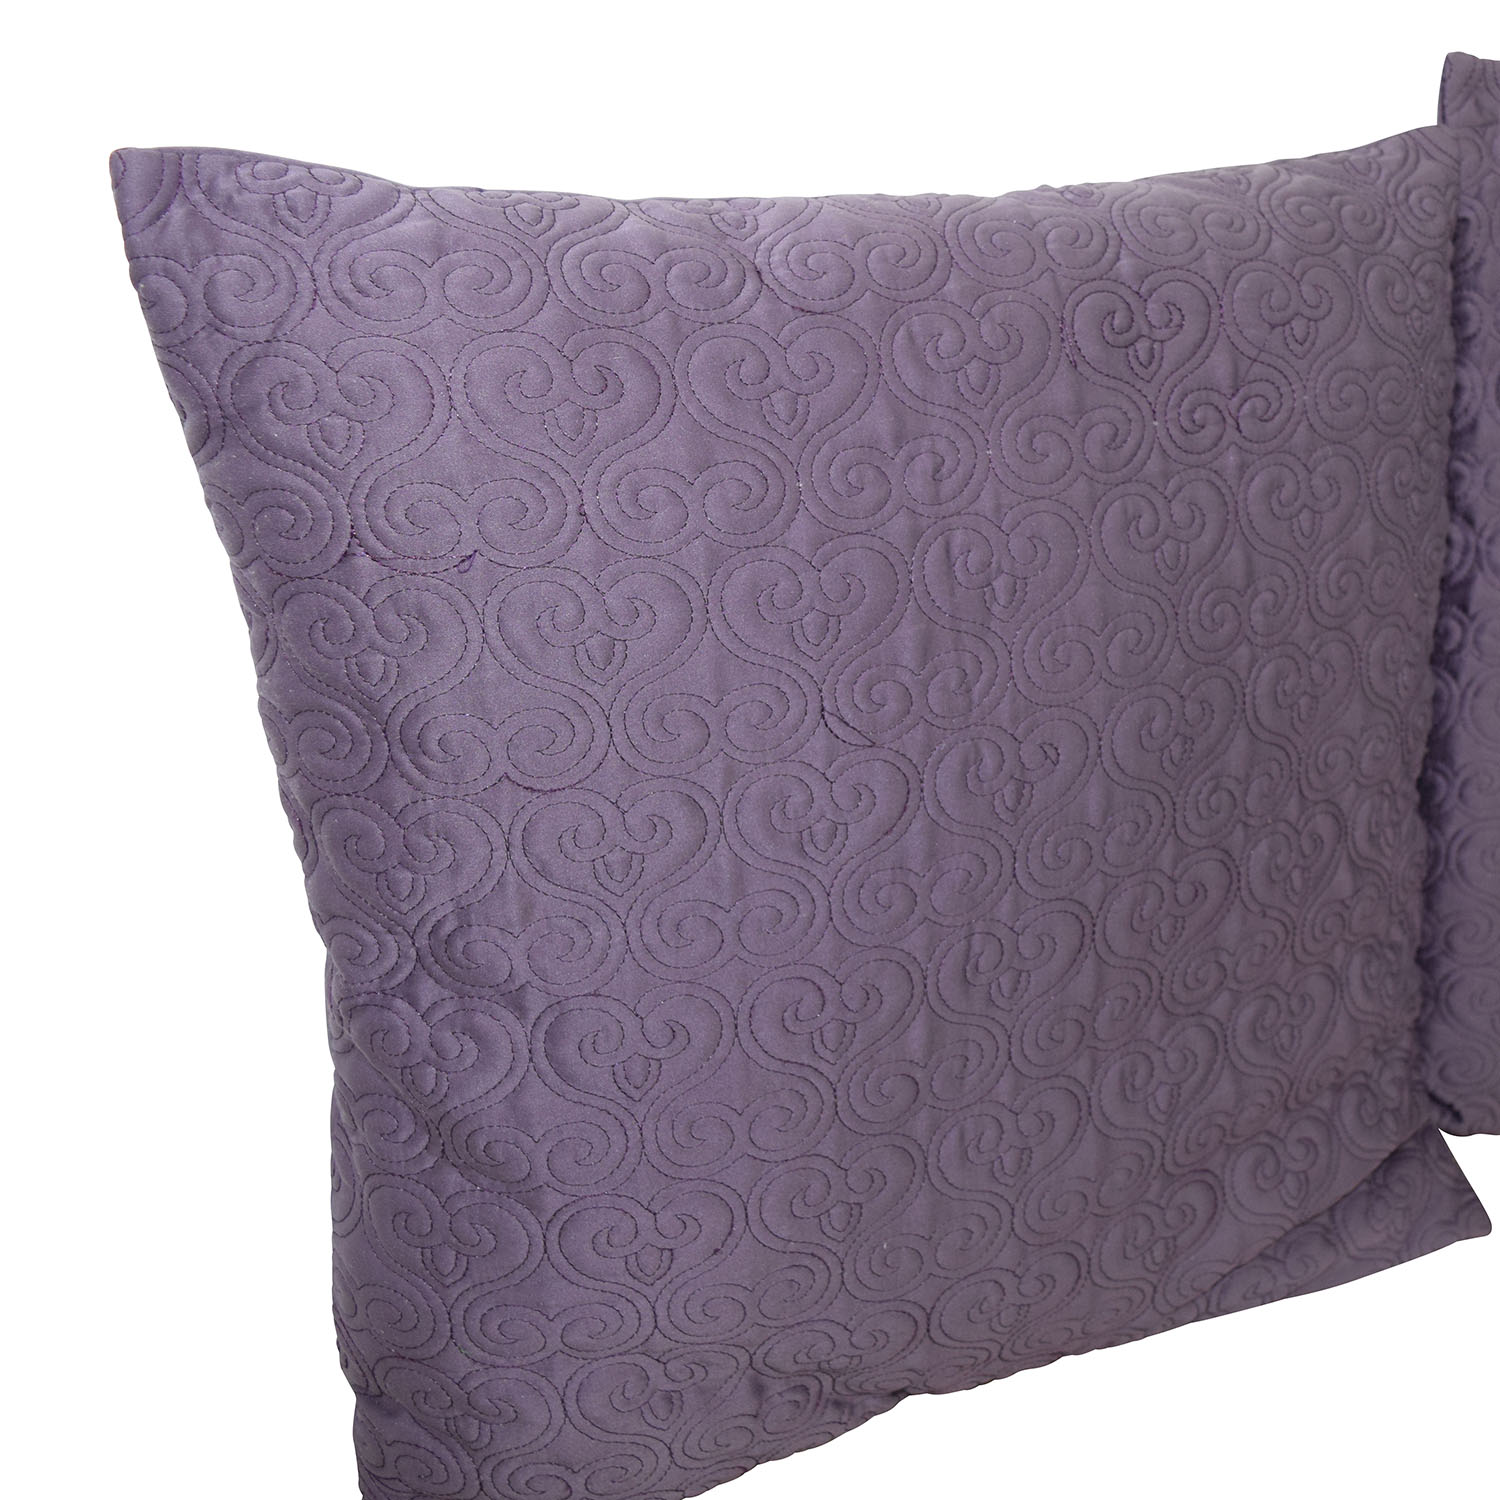 buy Purple Quilted Toss Pillows Decorative Accents